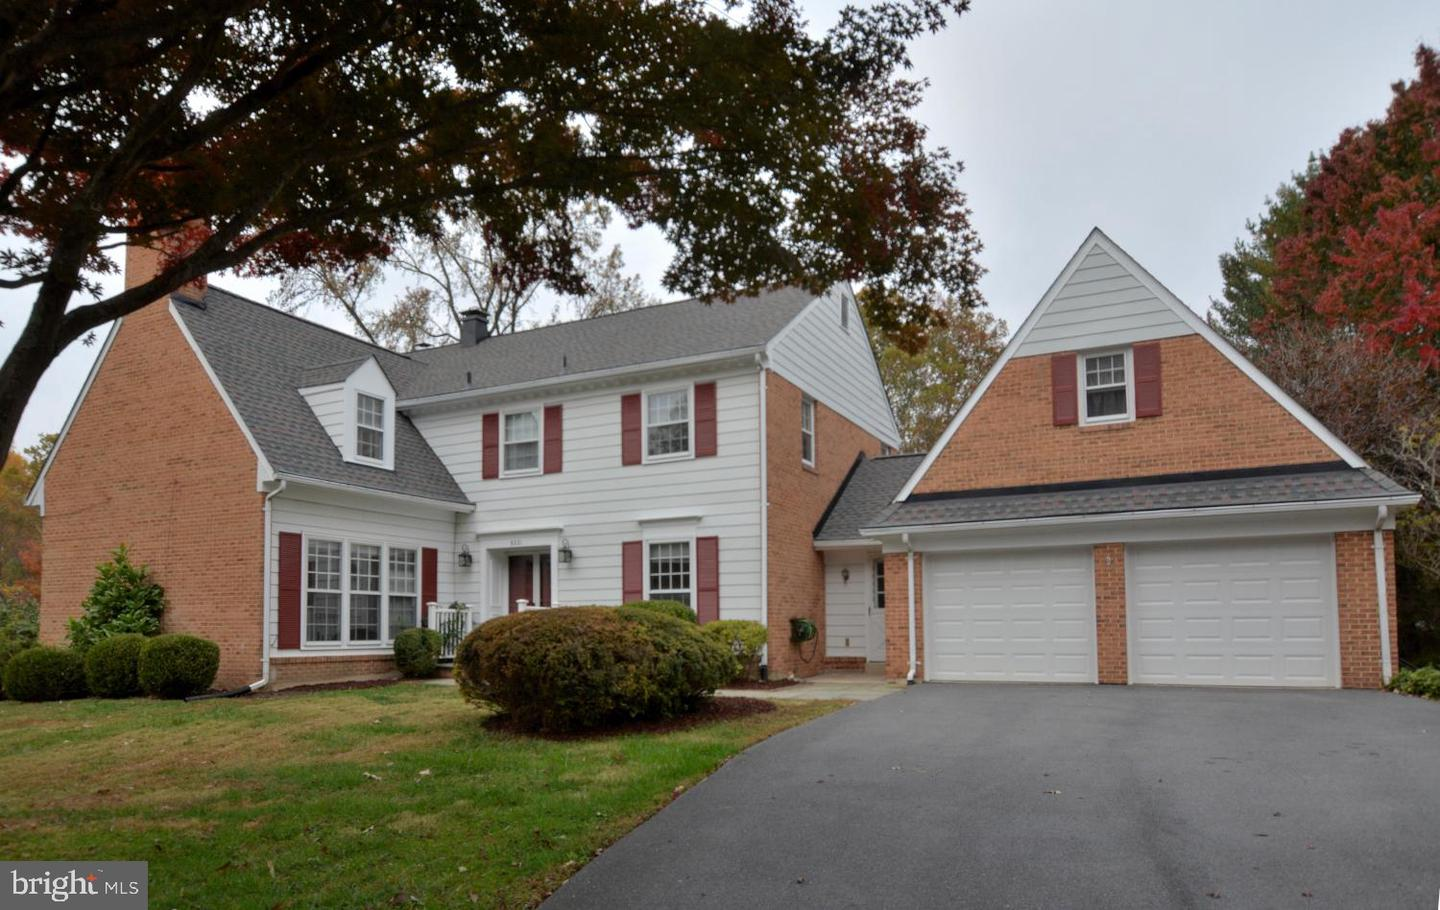 8221 W BUCKSPARK LANE, POTOMAC, Maryland